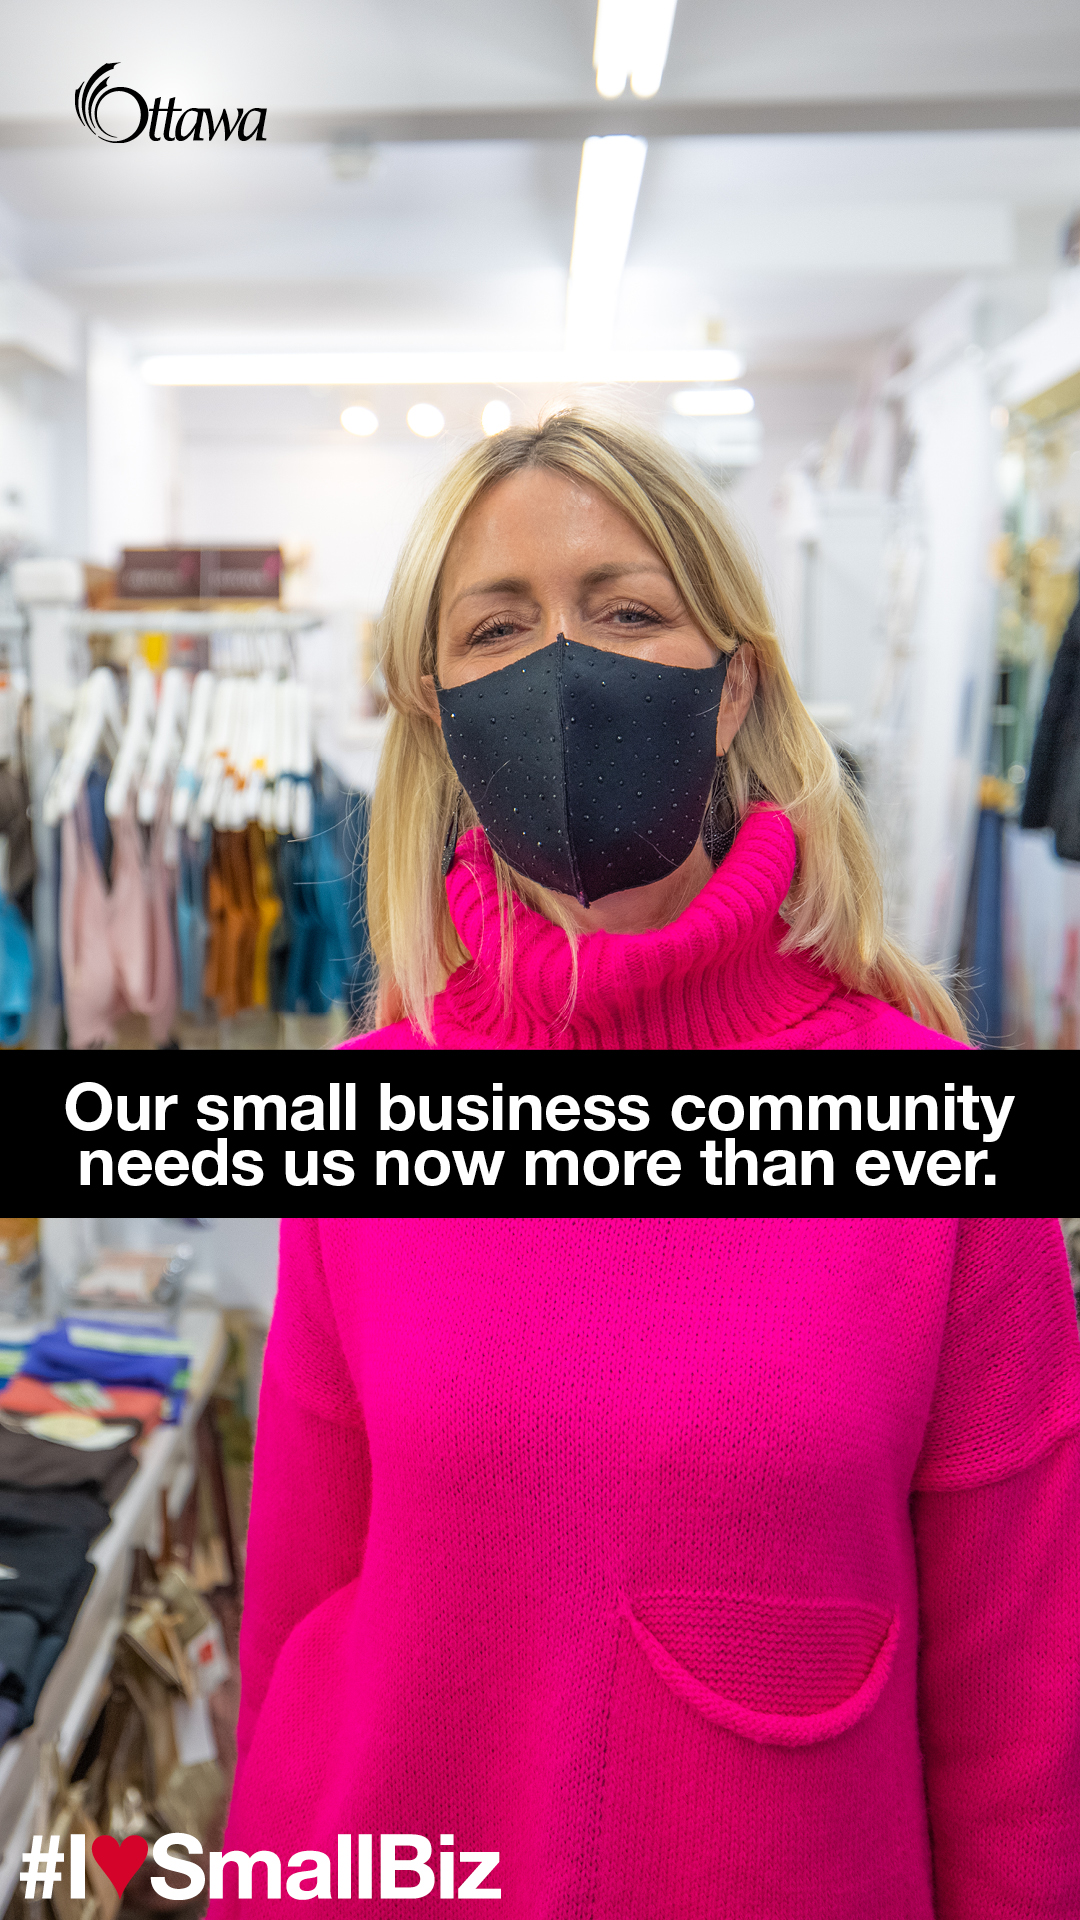 •	A woman wearing a mask stands in a clothing boutique. Our small business community needs us now more than ever.